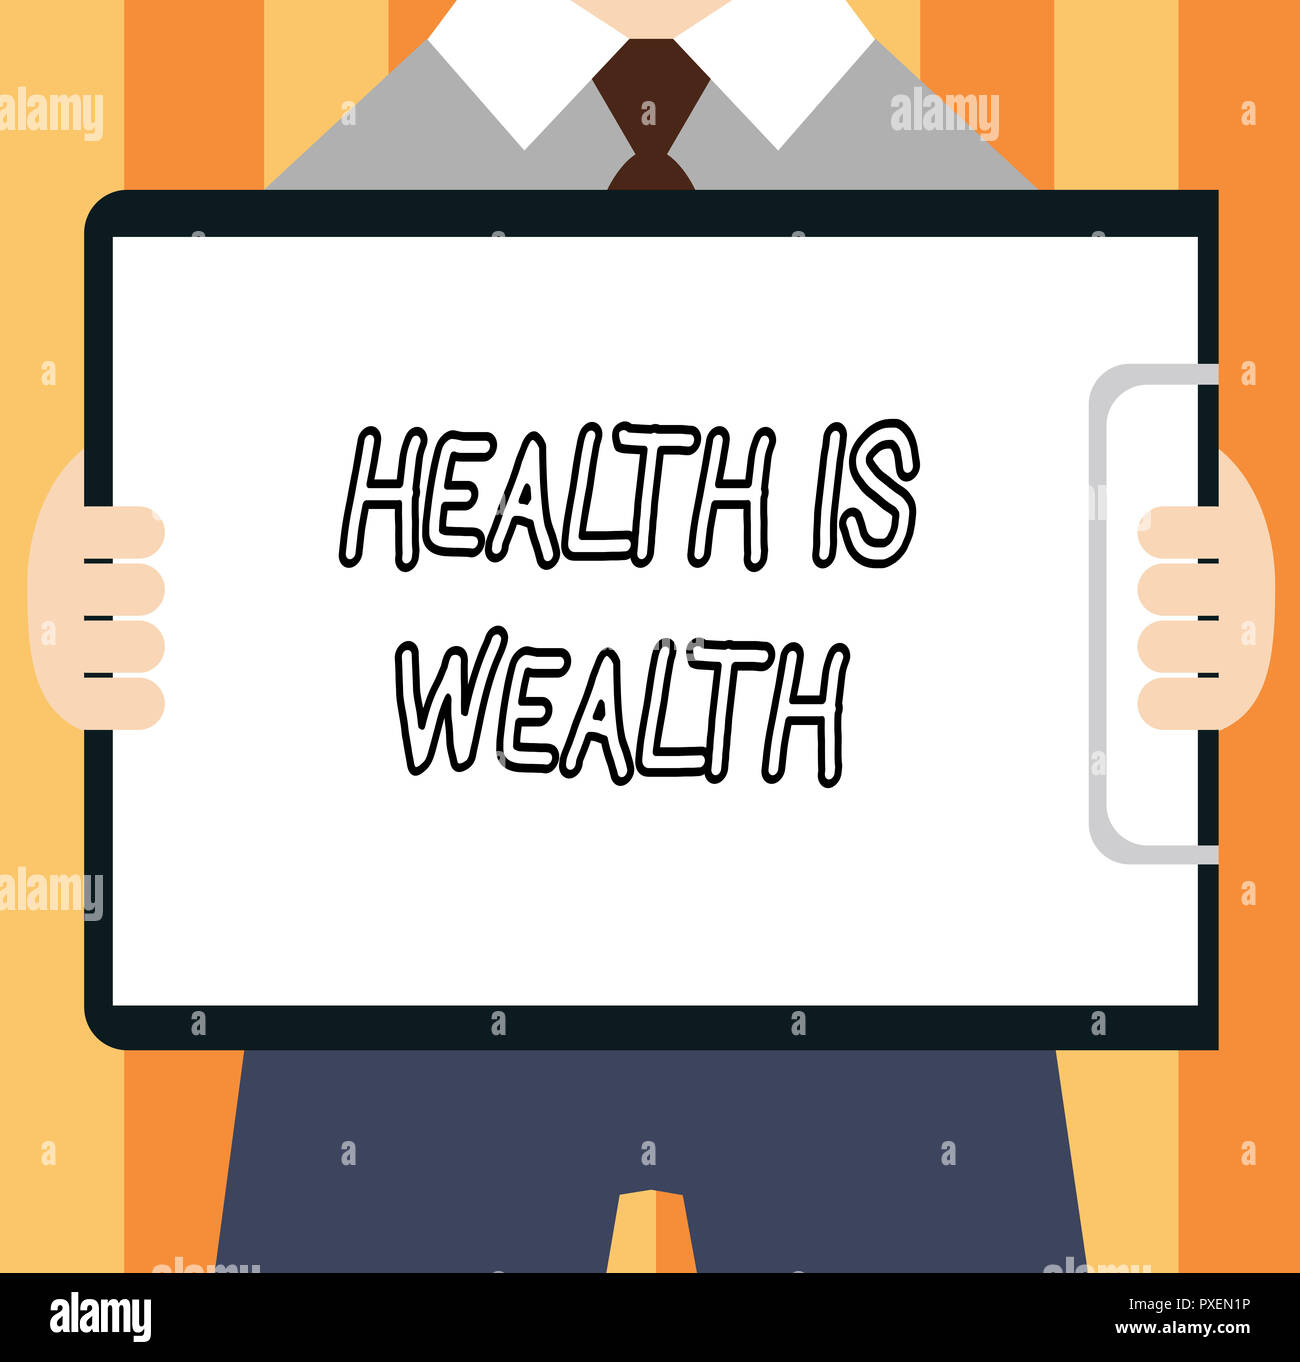 importance of health compared to wealth